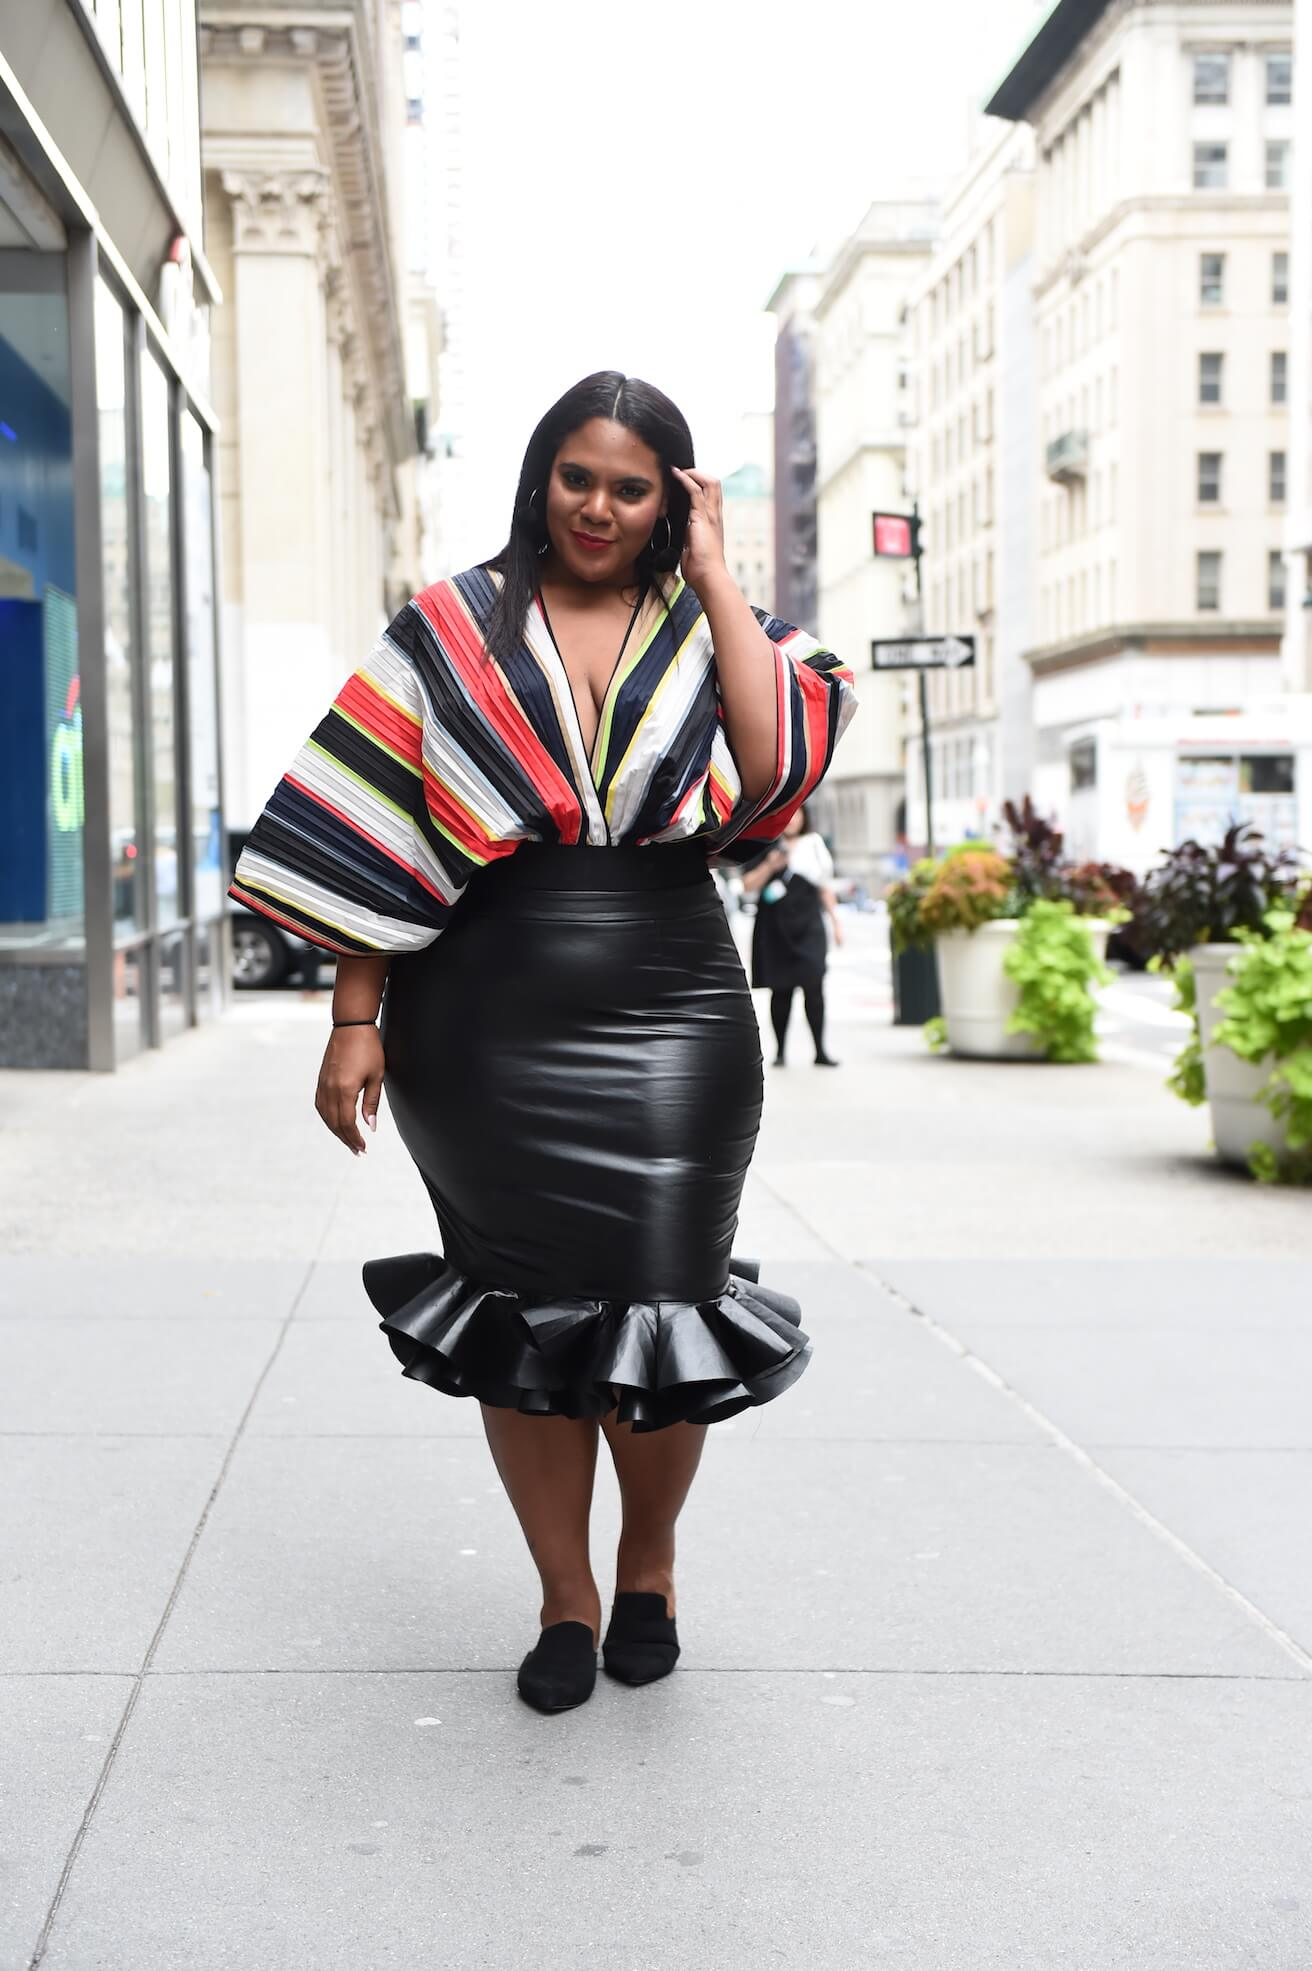 0228b045226 plus size street style featuring a black skirt and bold top